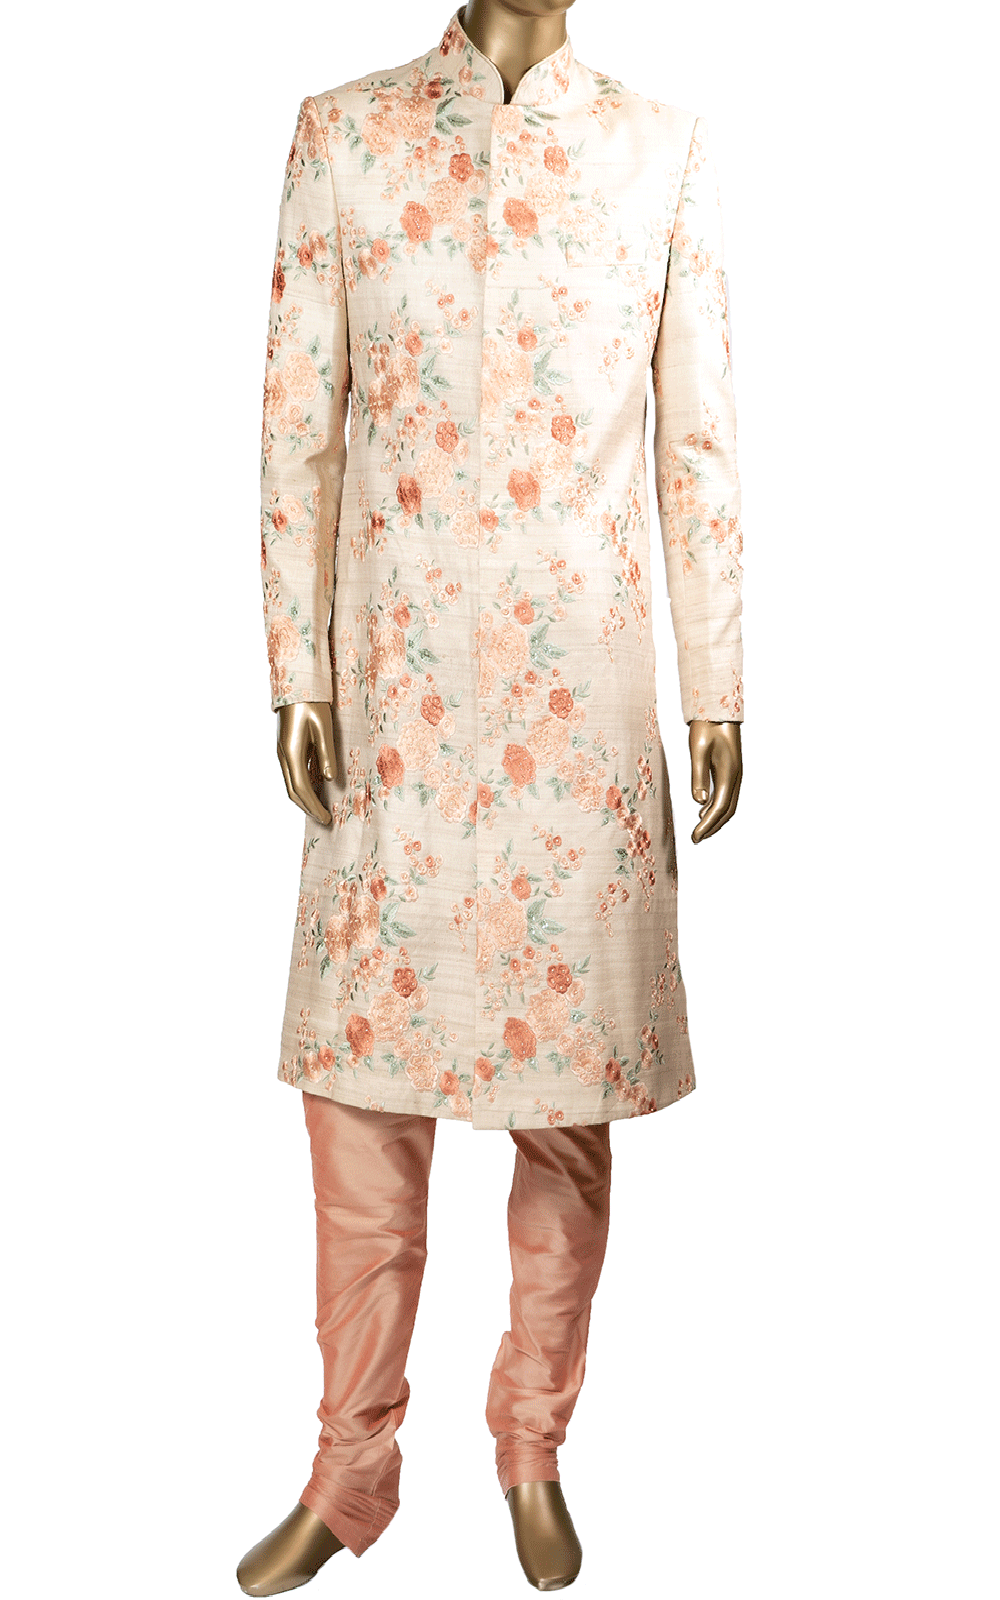 Off White Sherwani with Peach Floral Threadwork